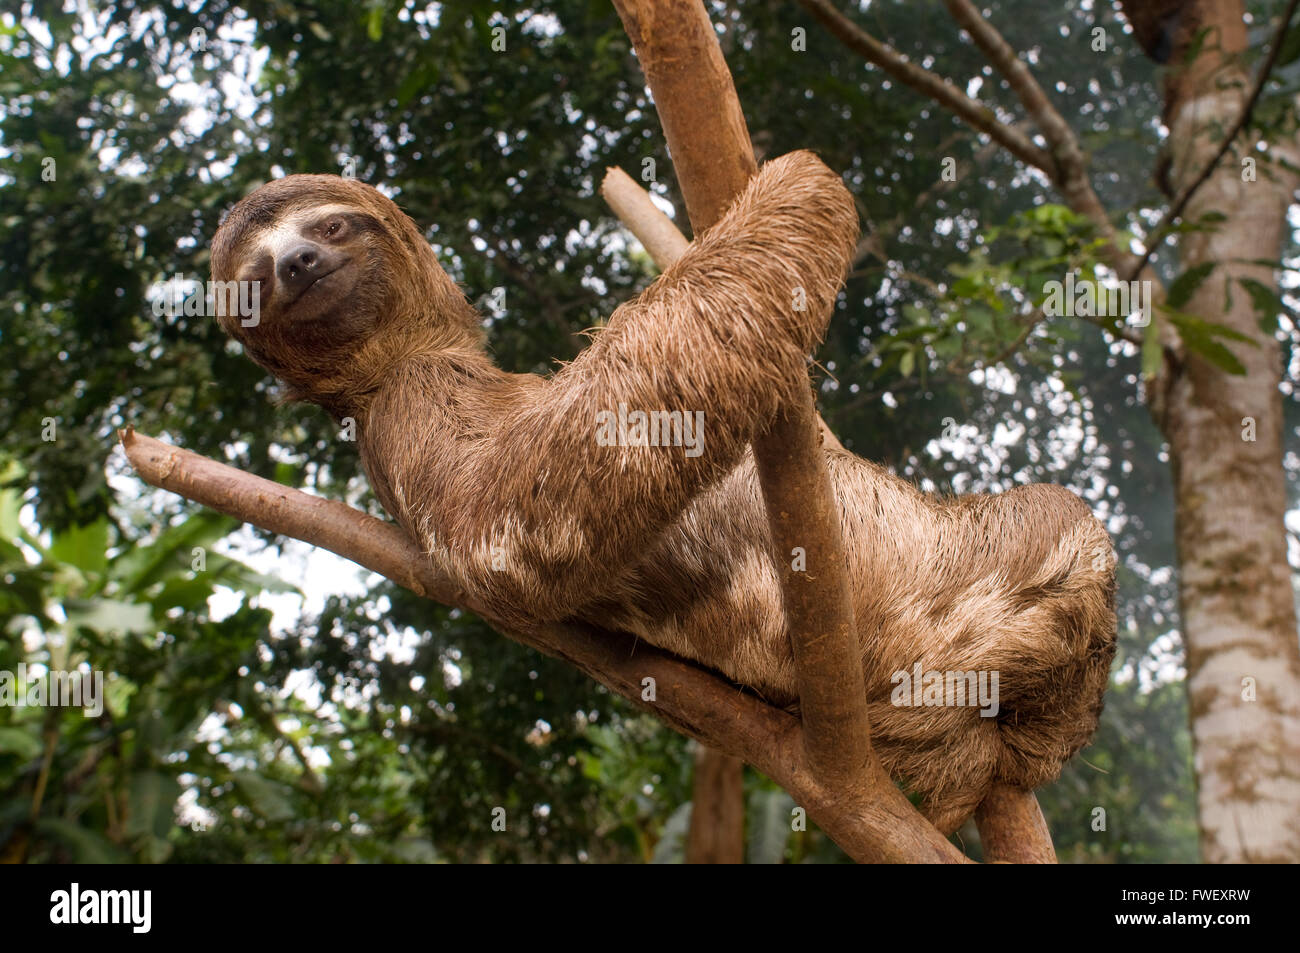 An sloth bear climbed a tree in a primary forest in the Amazon rainforest, near Iquitos, Loreto, Peru. Sloths are - Stock Image